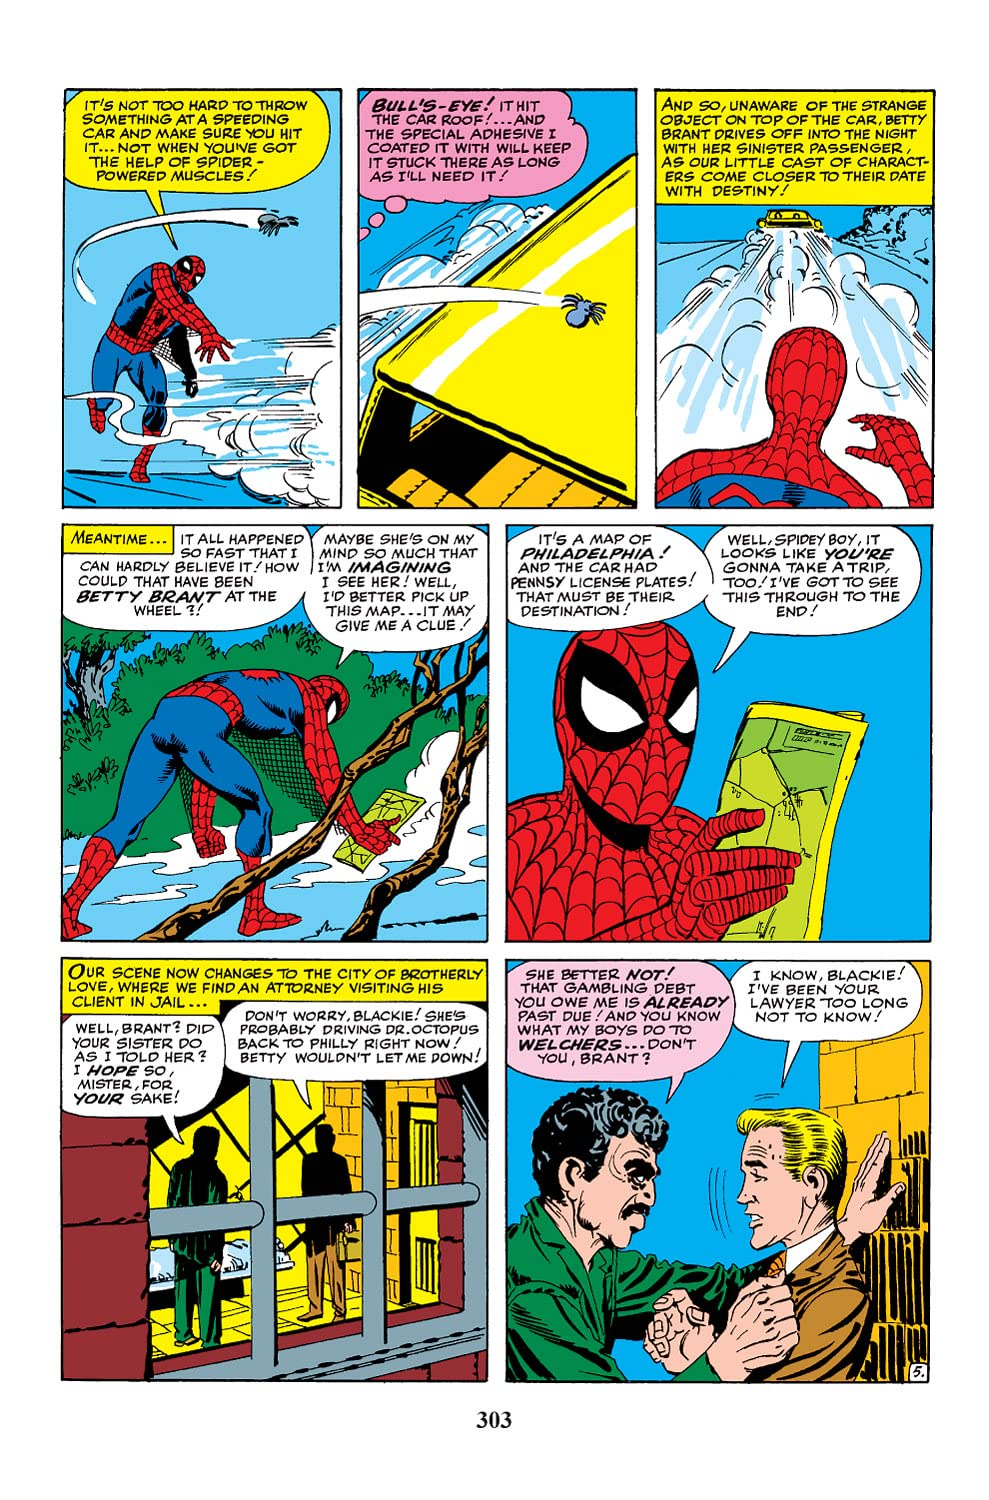 Amazing Spider-Man Masterworks Vol. 2